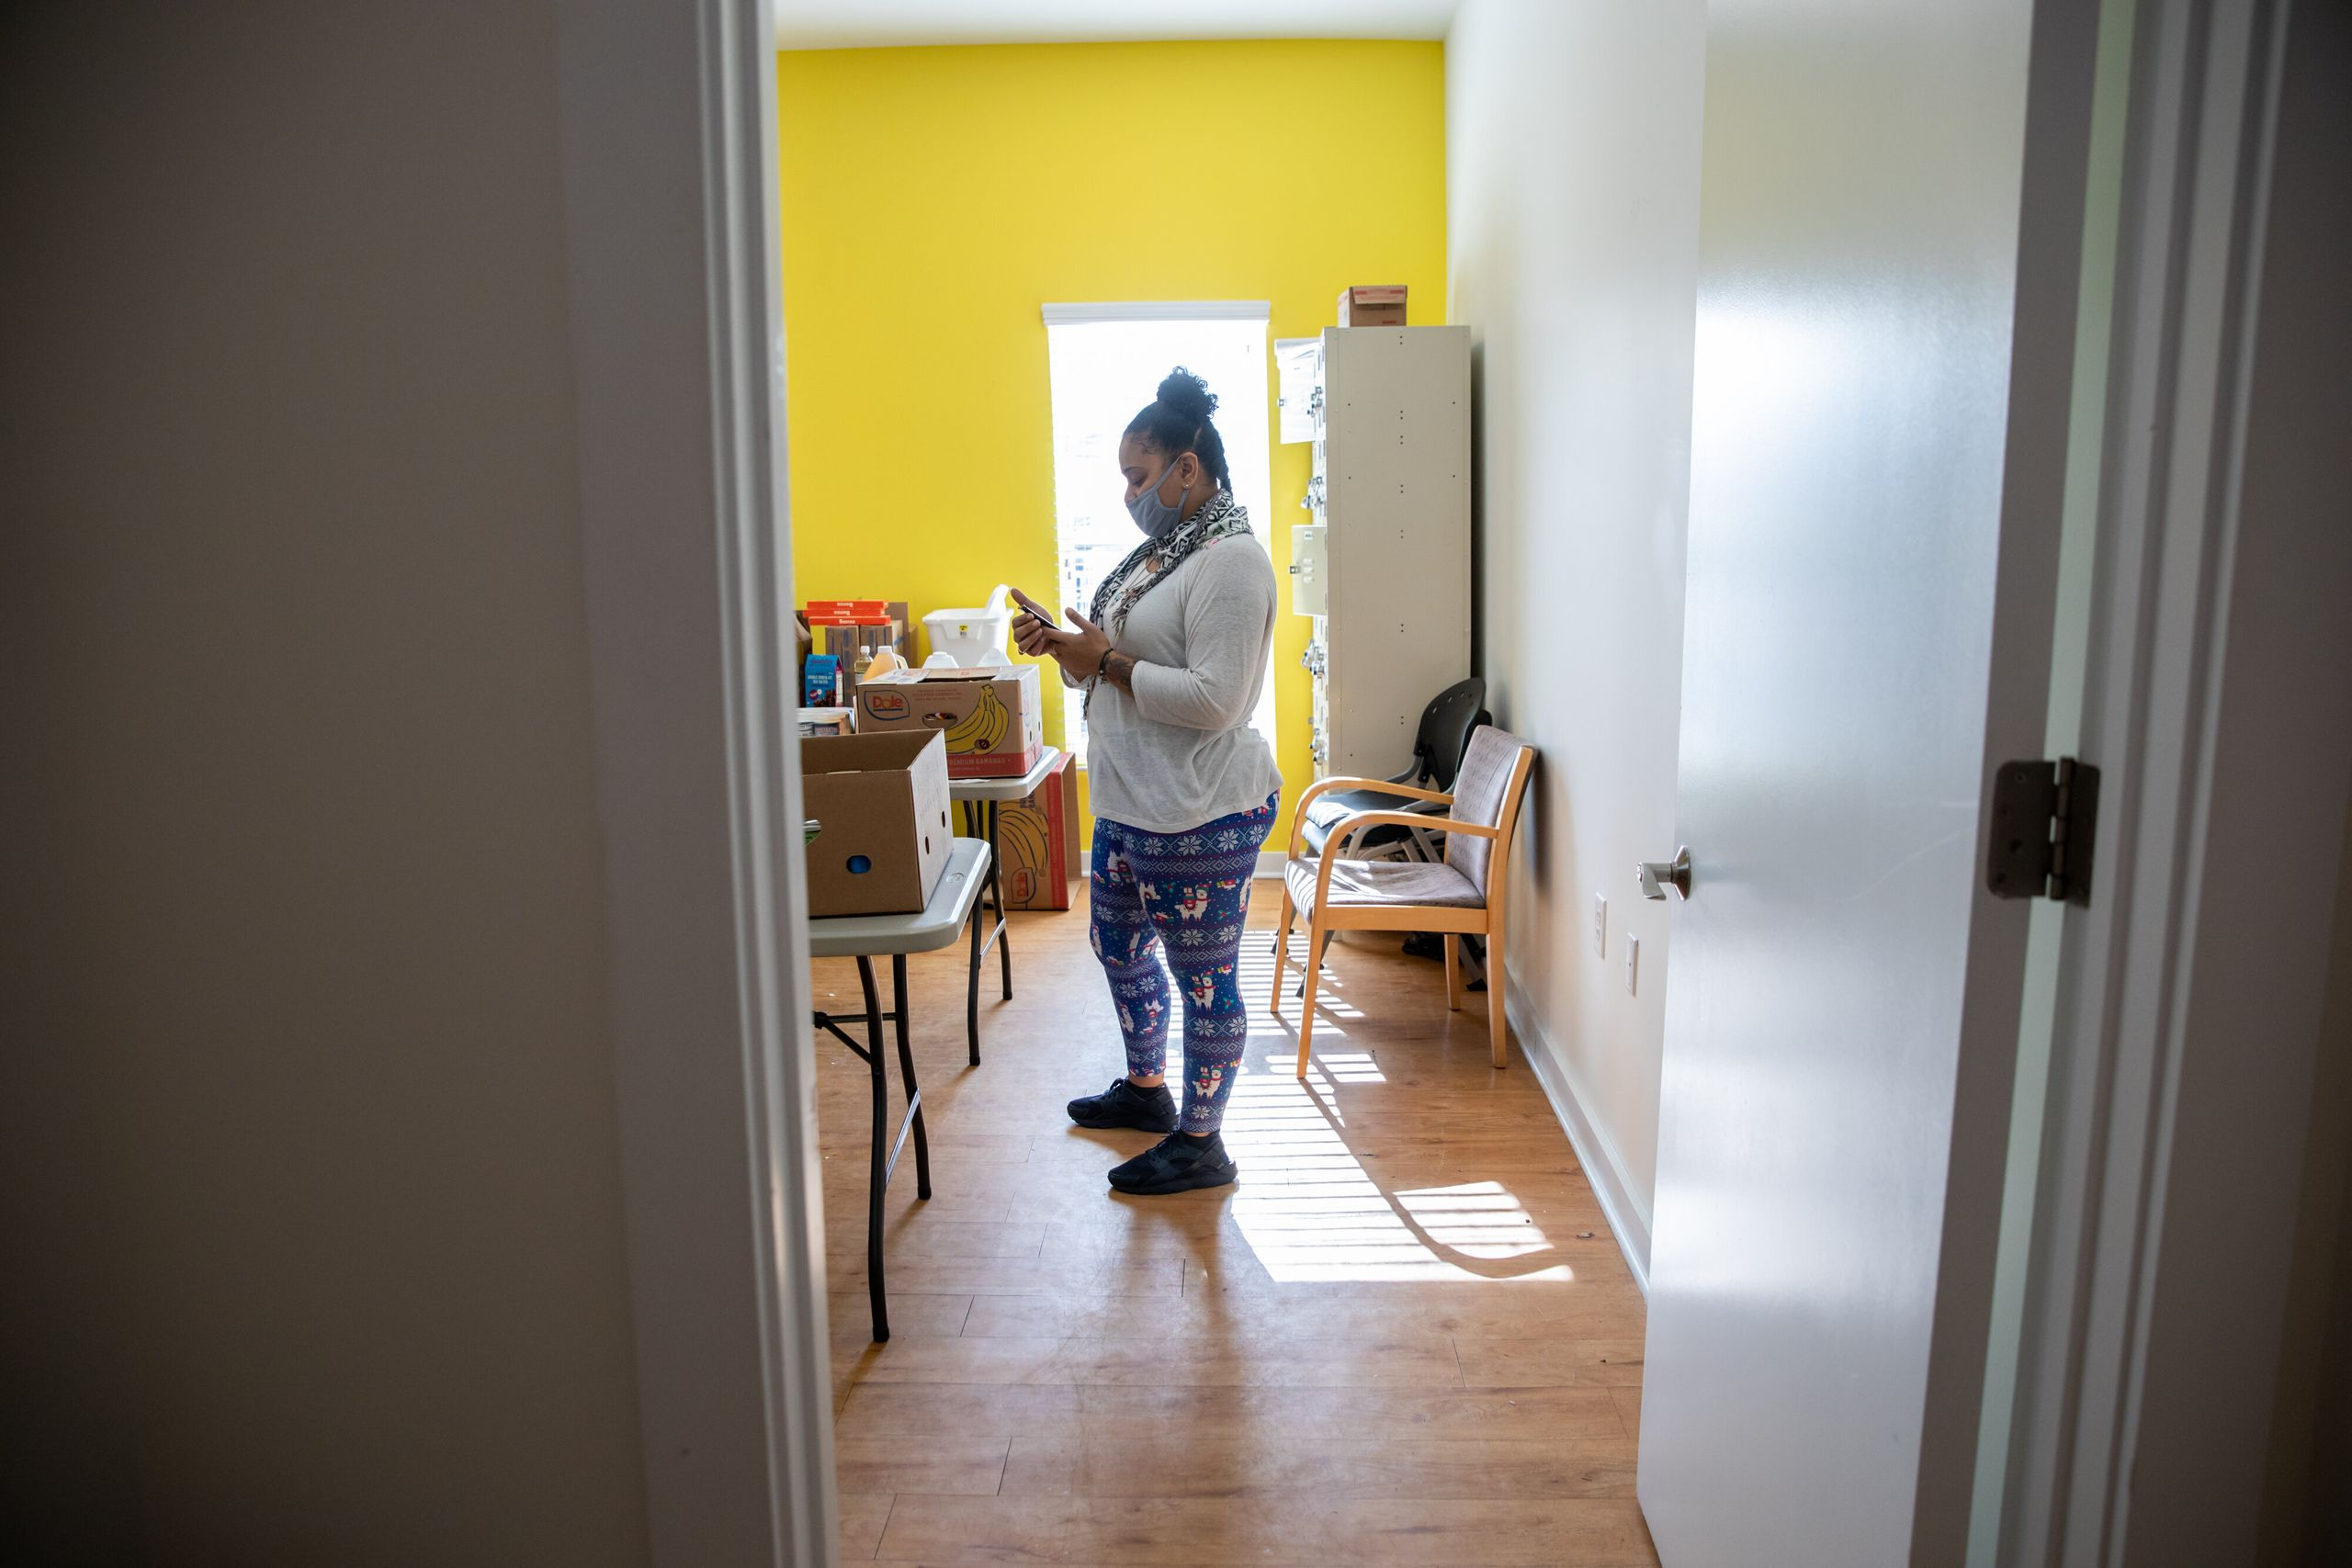 Nawaal Walker checks her phone while working her job at a mental health treatment center.